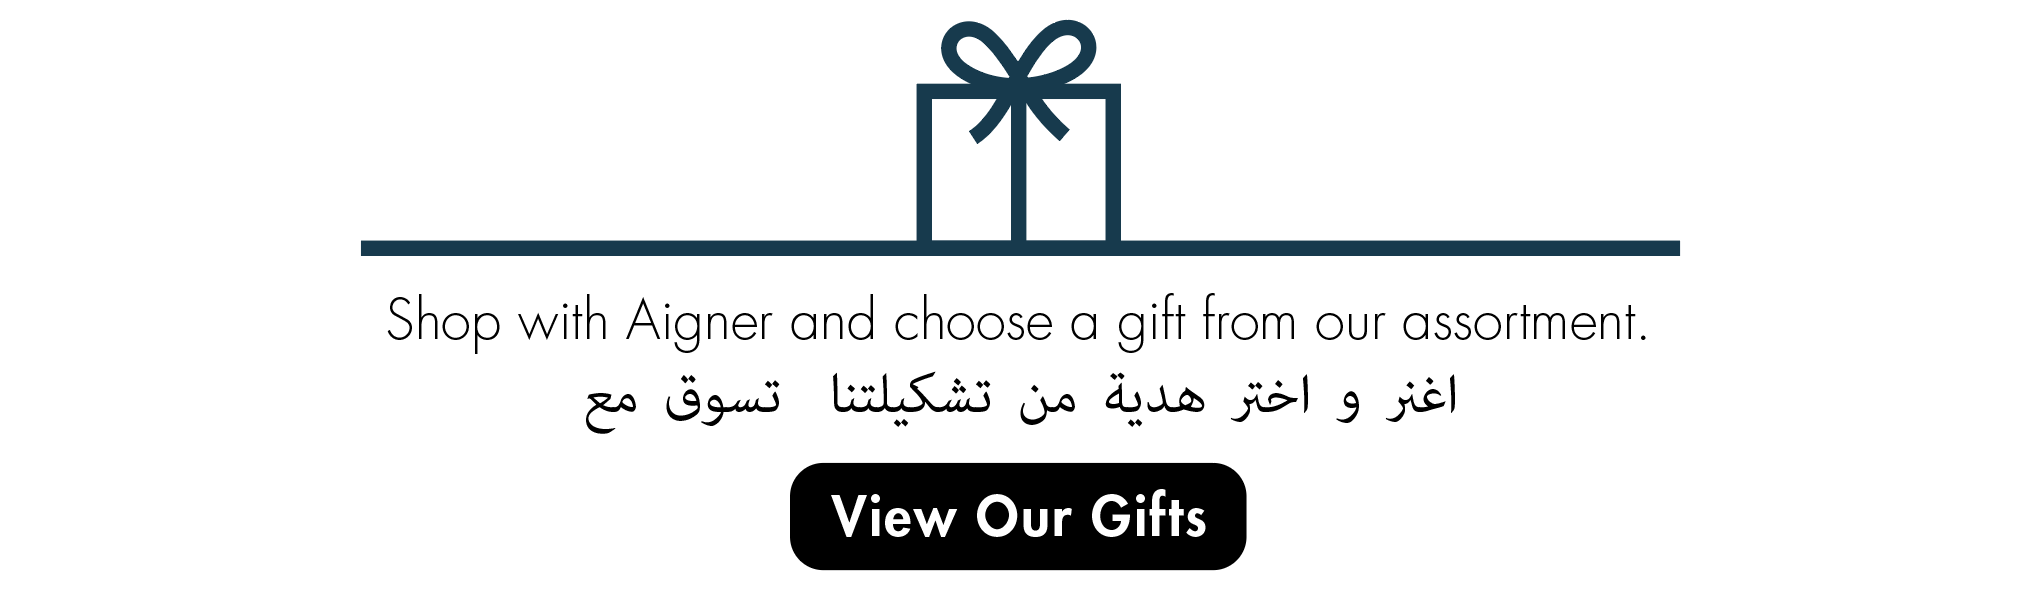 View Our Gifts